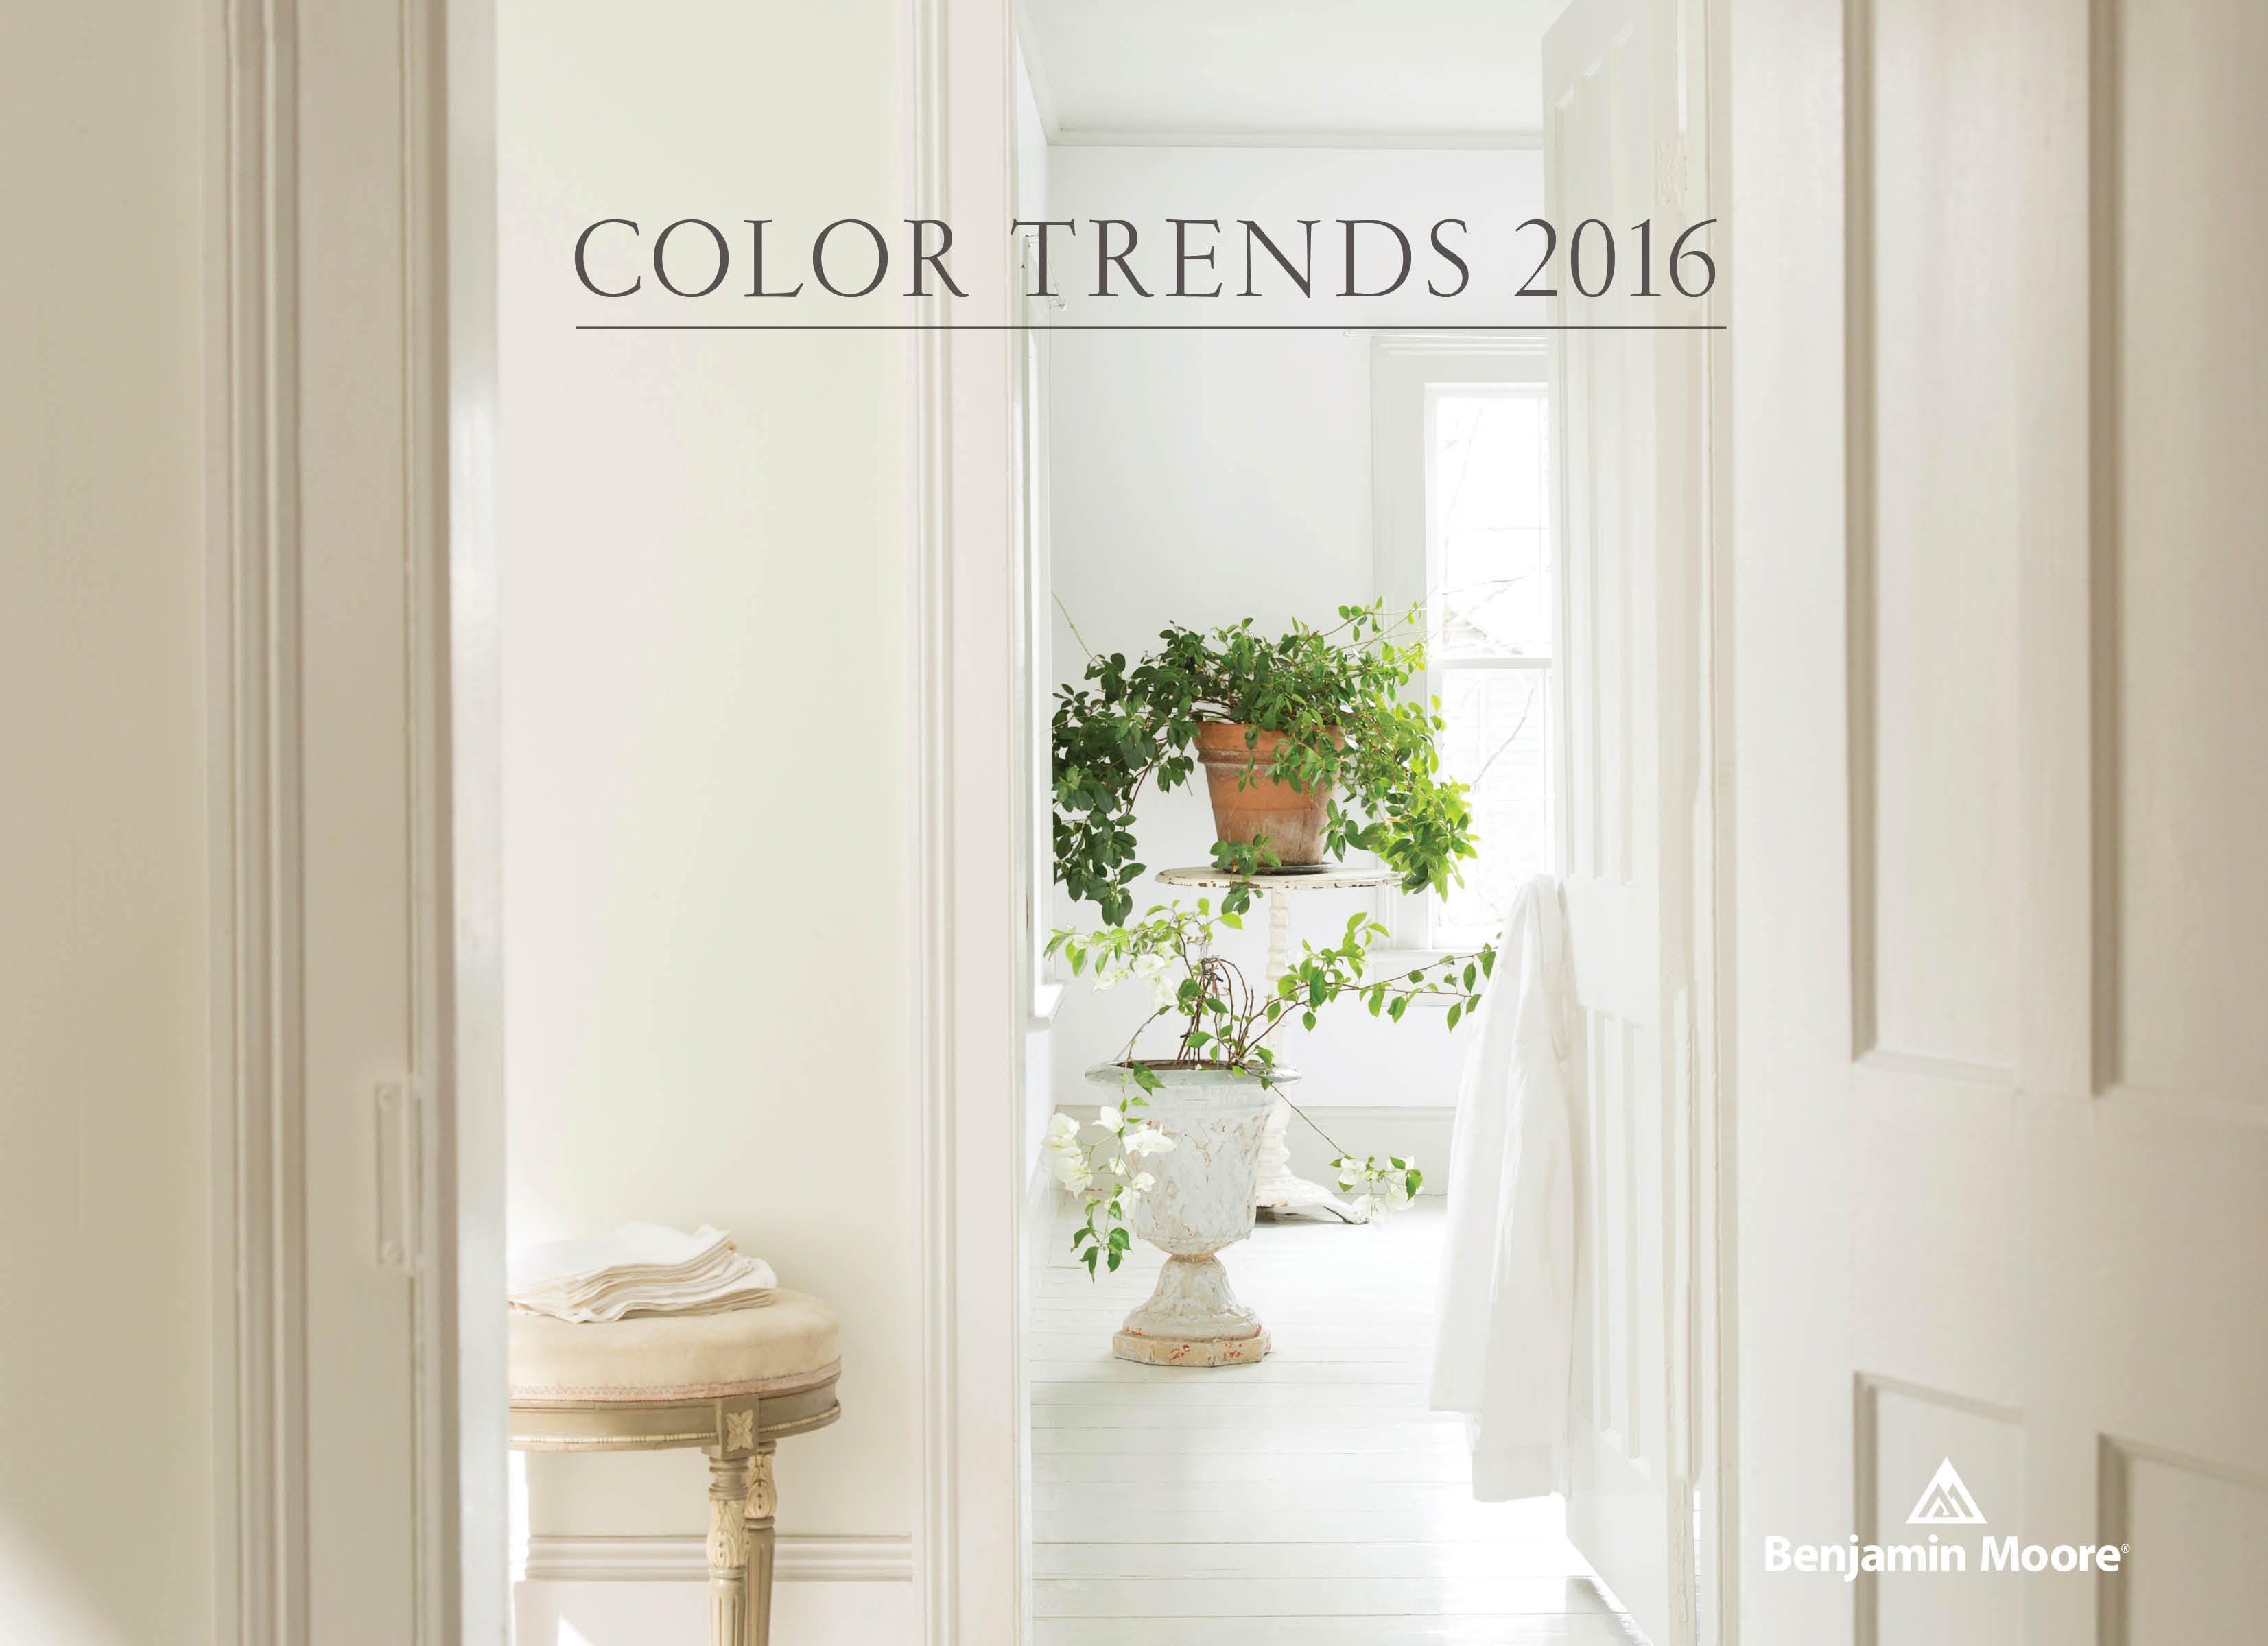 Benjamin Moore Names Simply White Its 2016 Color Of The Year Business Wire